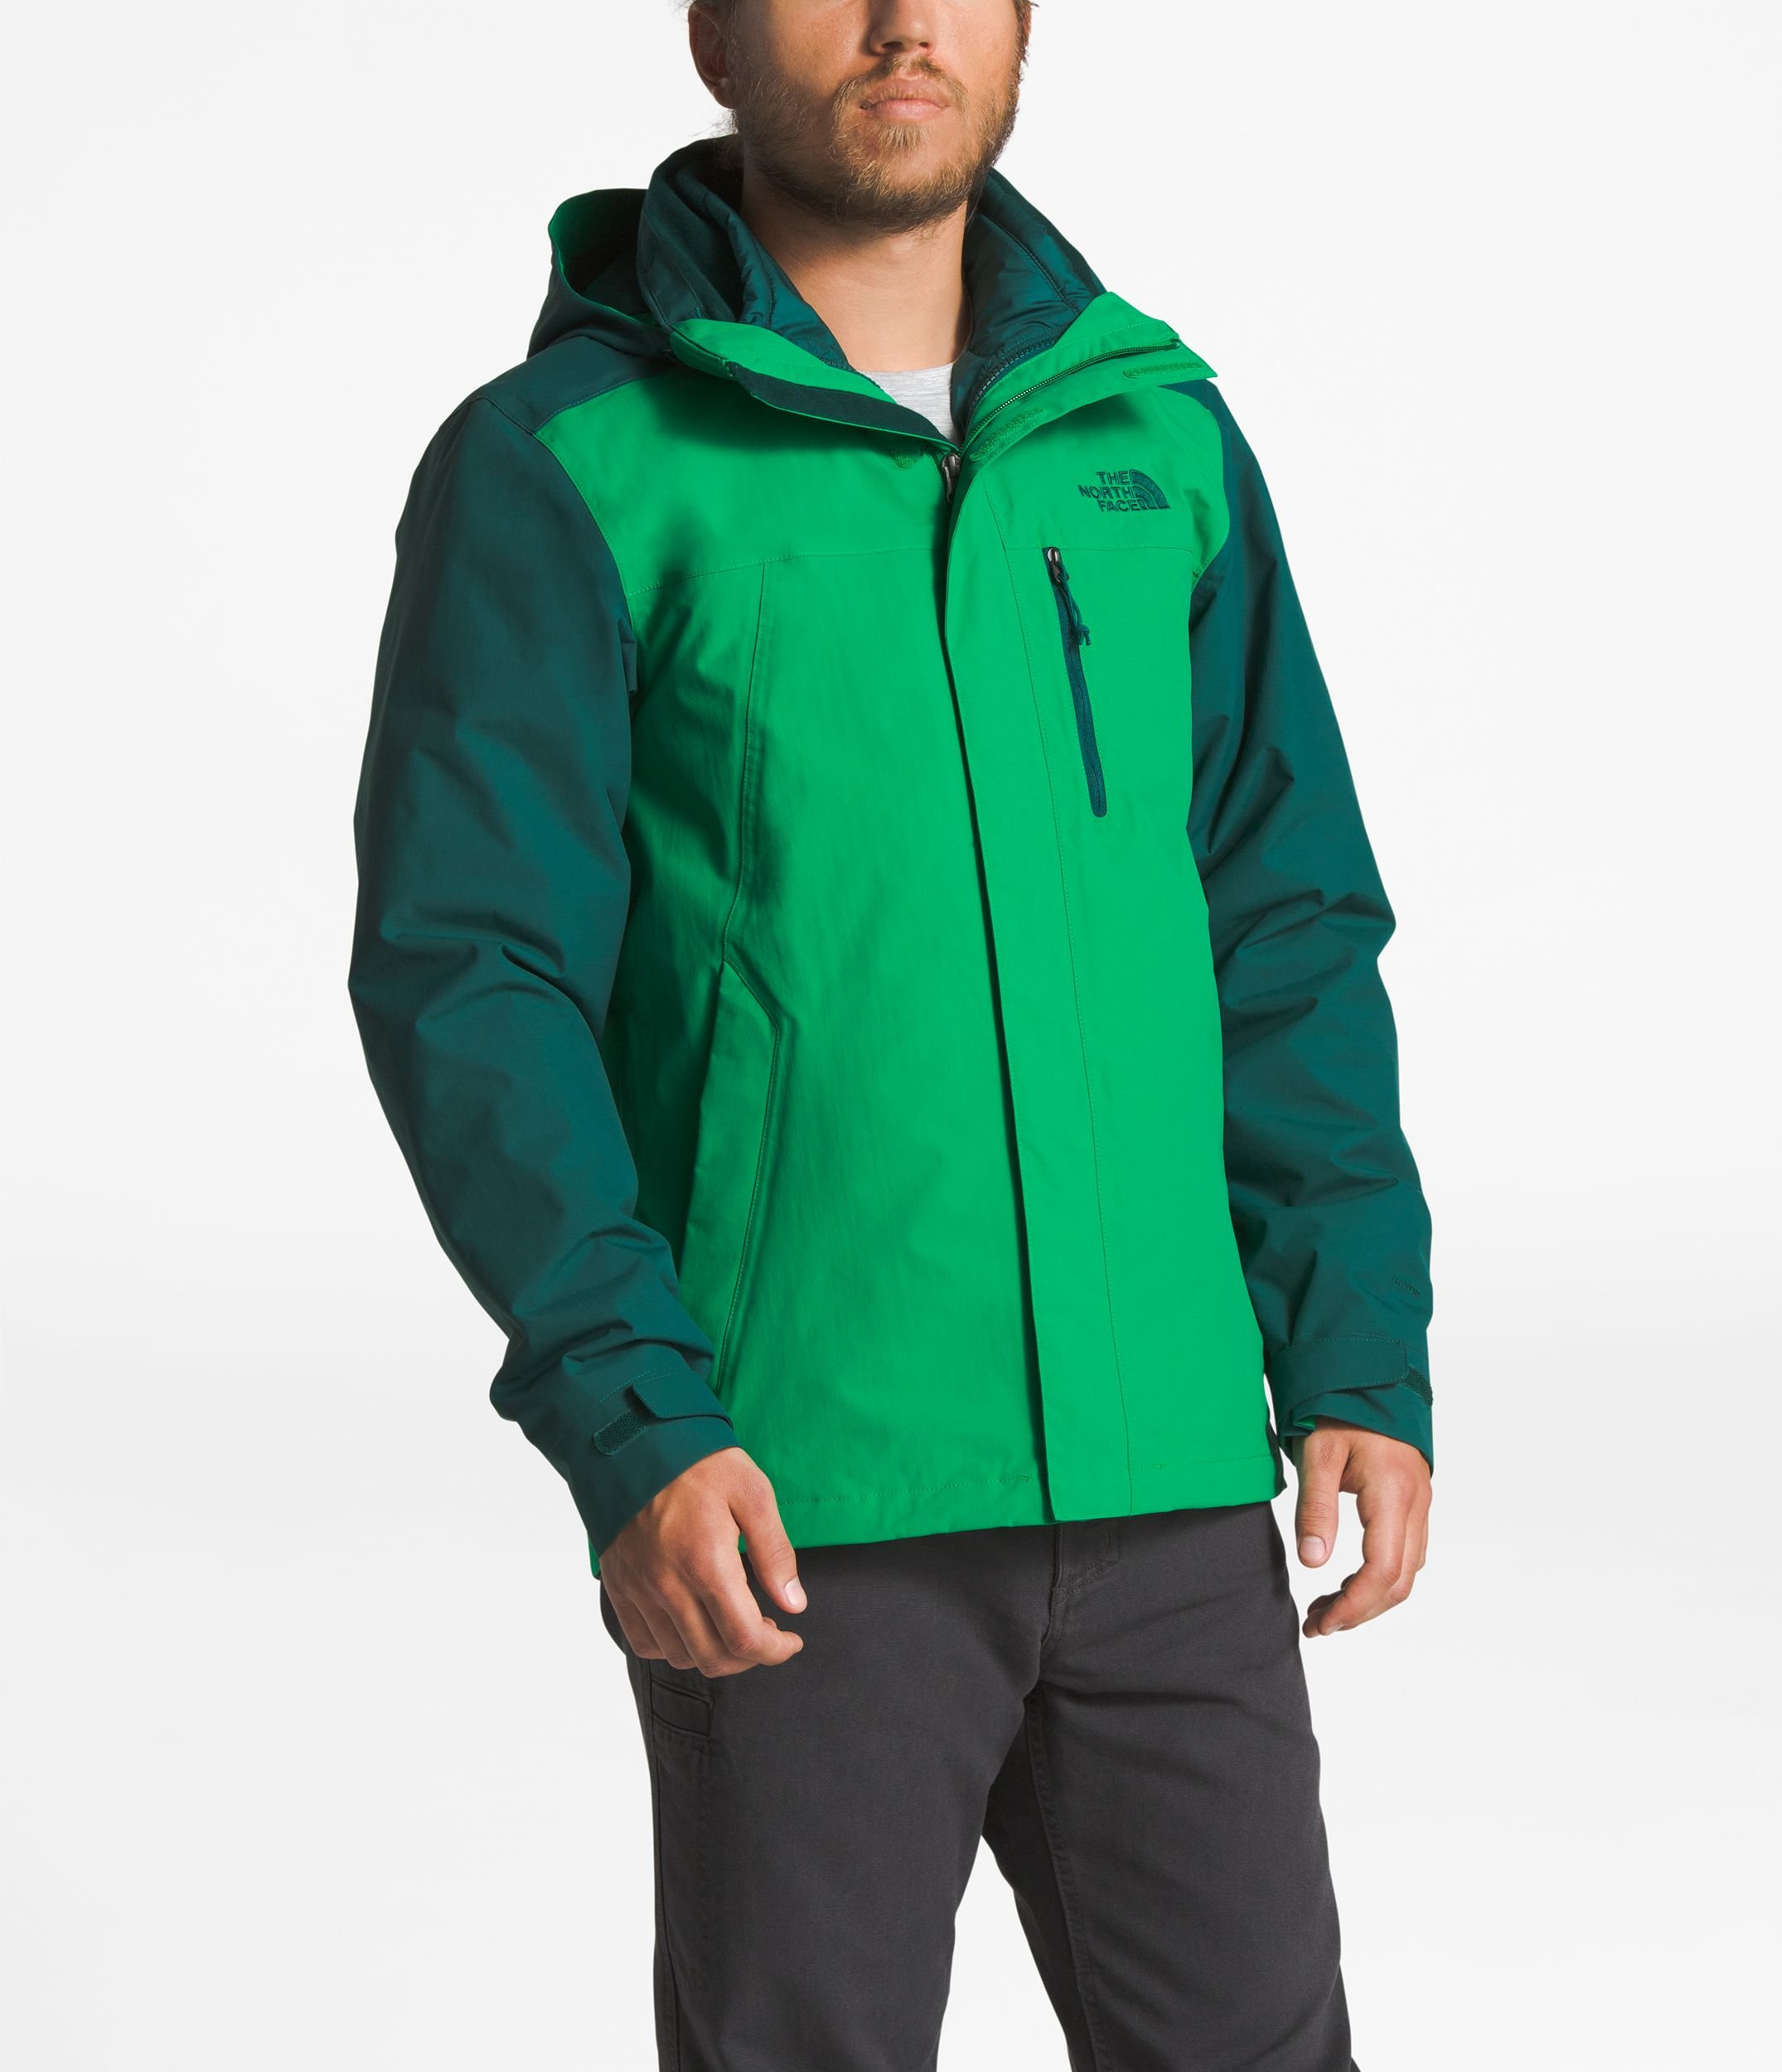 The North Face Men's Carto Triclimate Jacket Primary Green/Botanical Garden Green Large